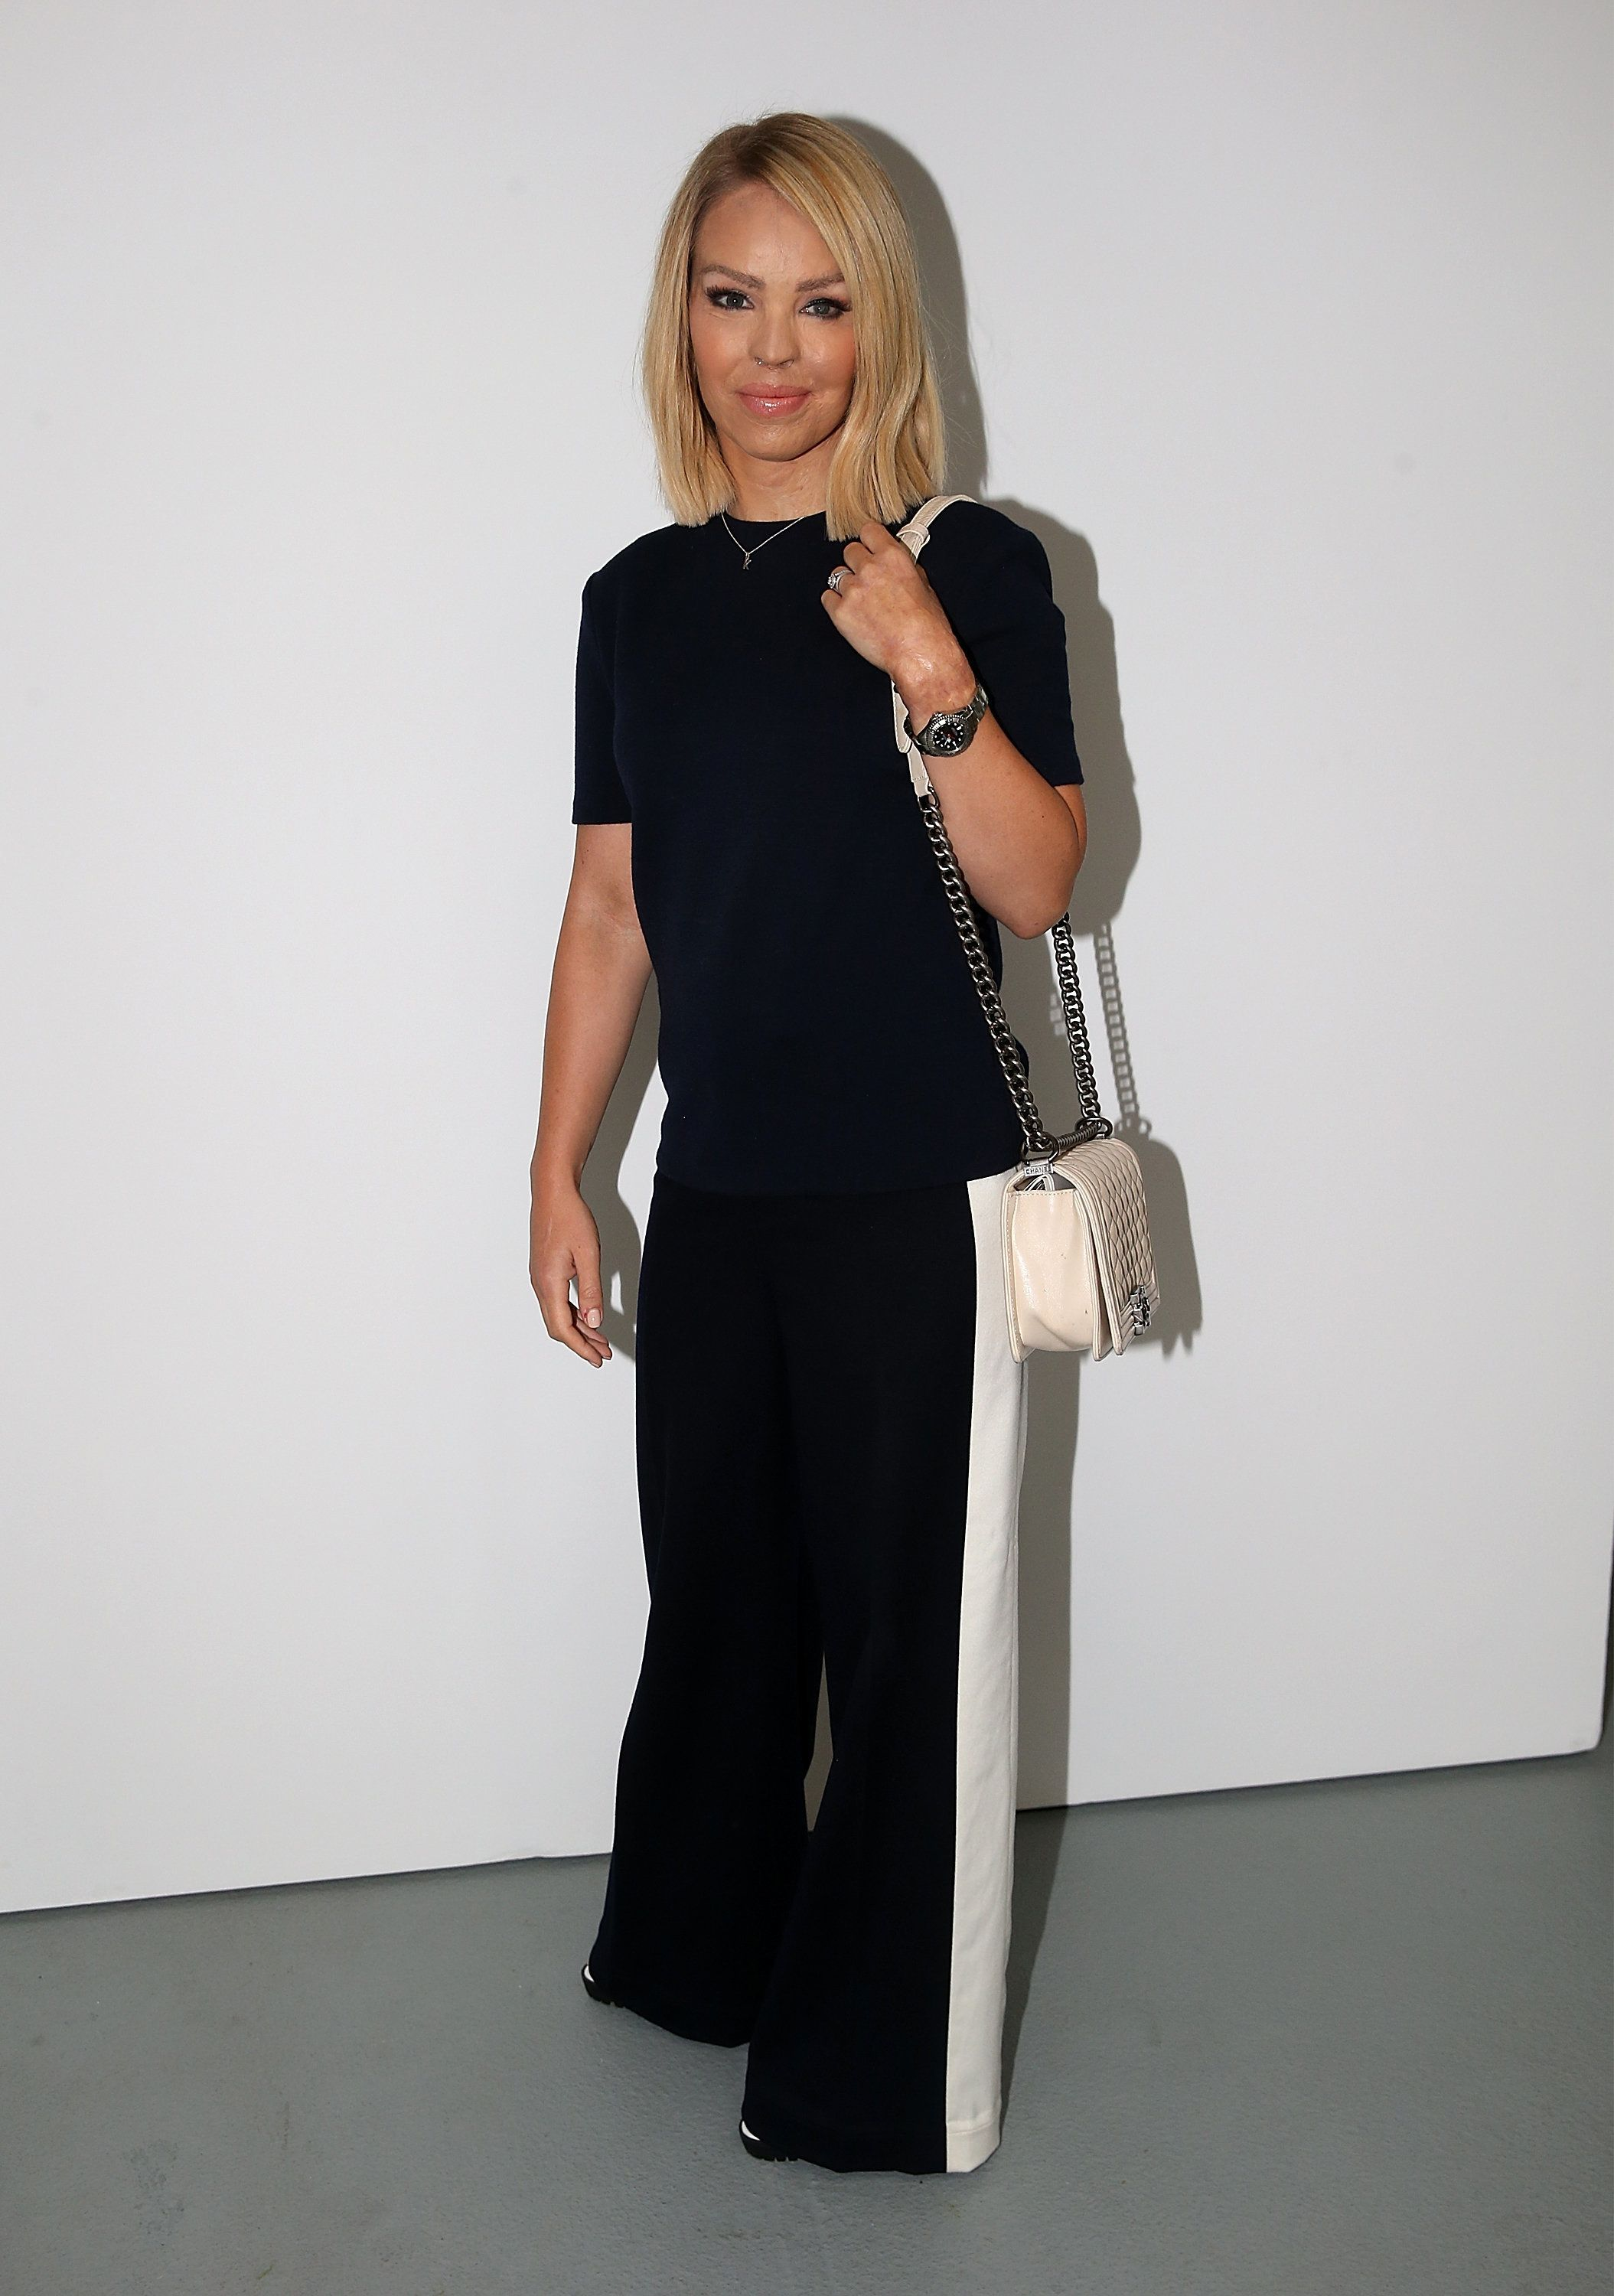 WISE WORDS: Katie Piper On Starting A 'Movement' And Holding Onto